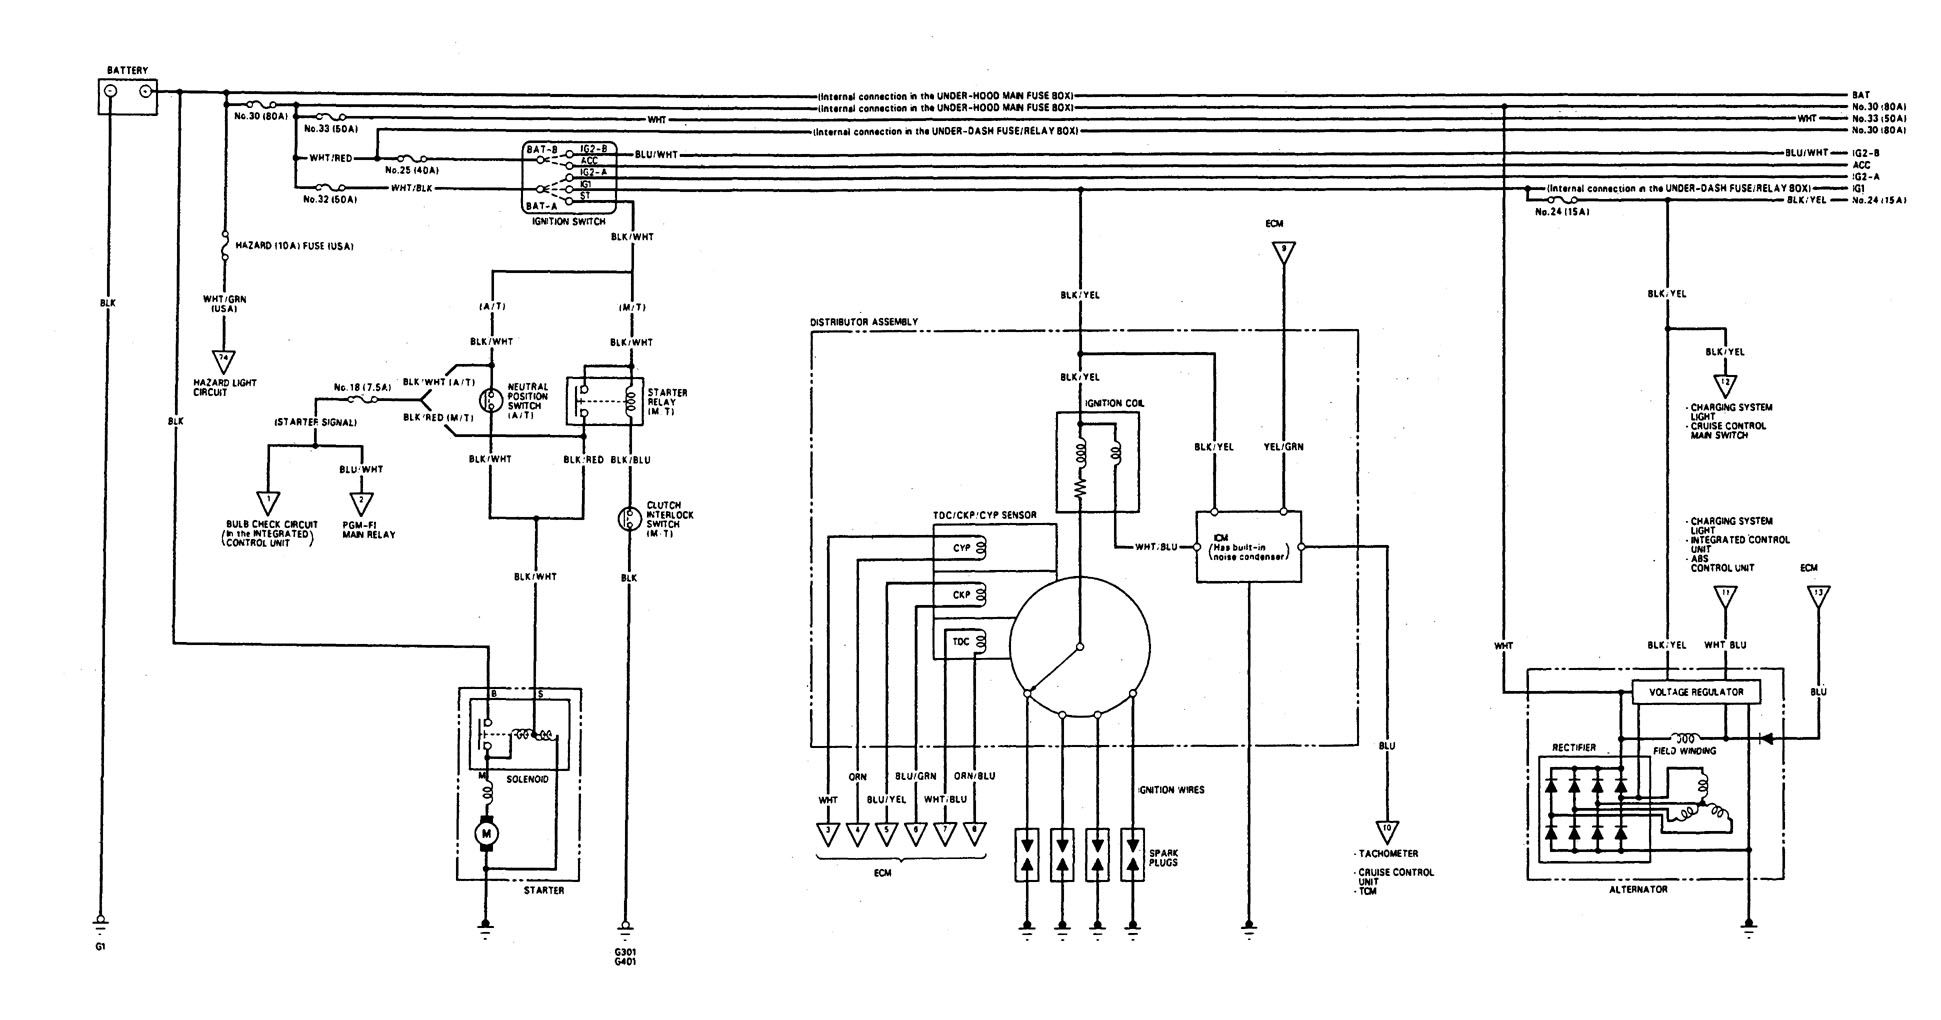 Integra Gsr Wiring Diagram